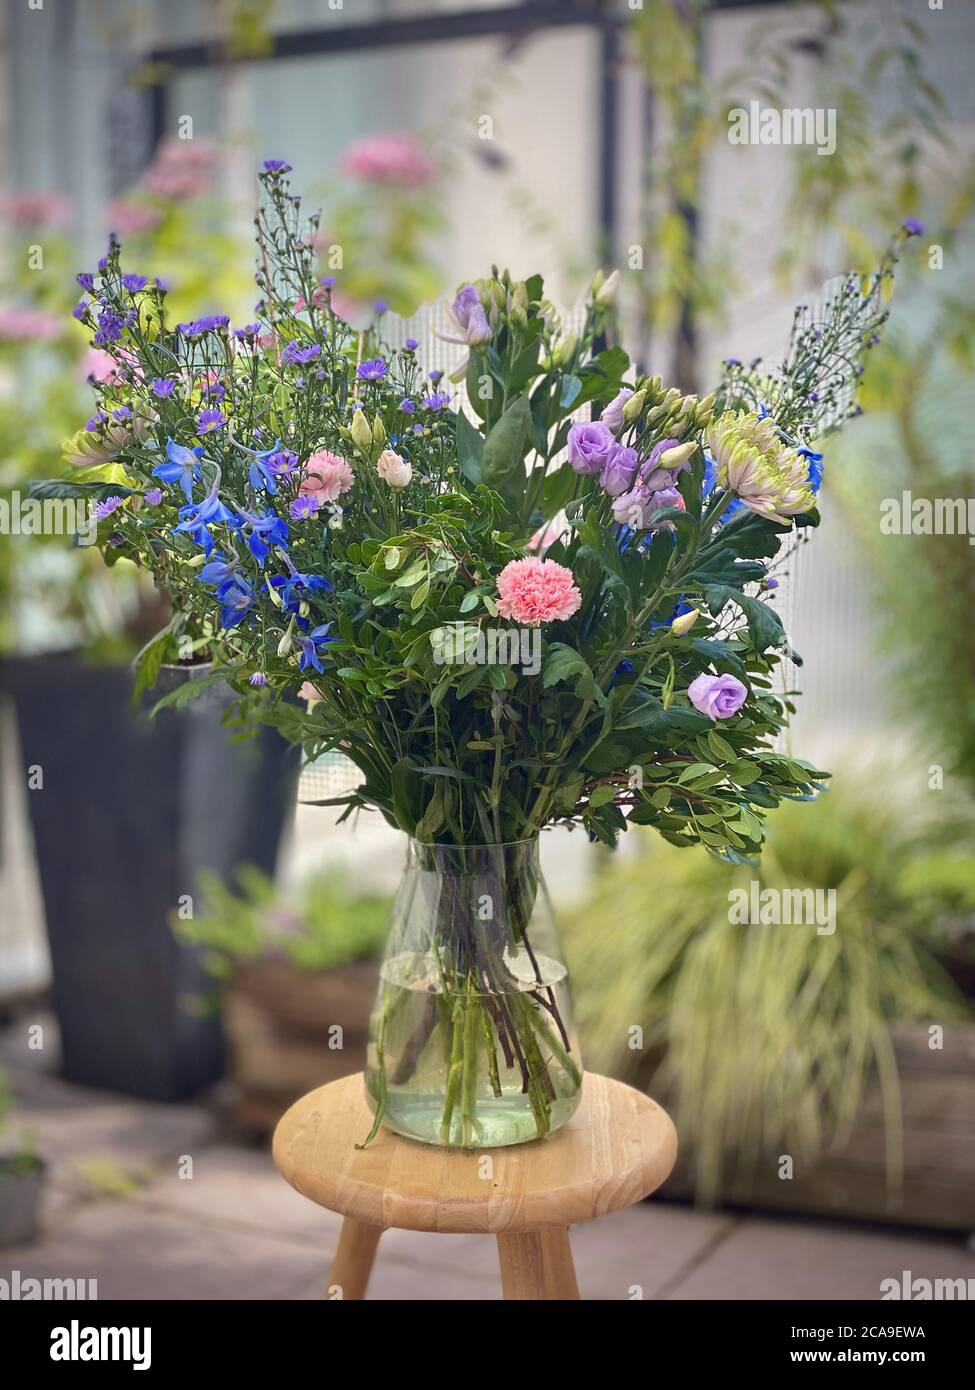 Beautiful Big Bouquet Of Flowers In A Vase Outside Displayed On A Small Wooden Table Plantlife Flowering Standing In Water Blurred Background Blue Purple And White Carnations Green Leafed Leaves Stock Photo Alamy